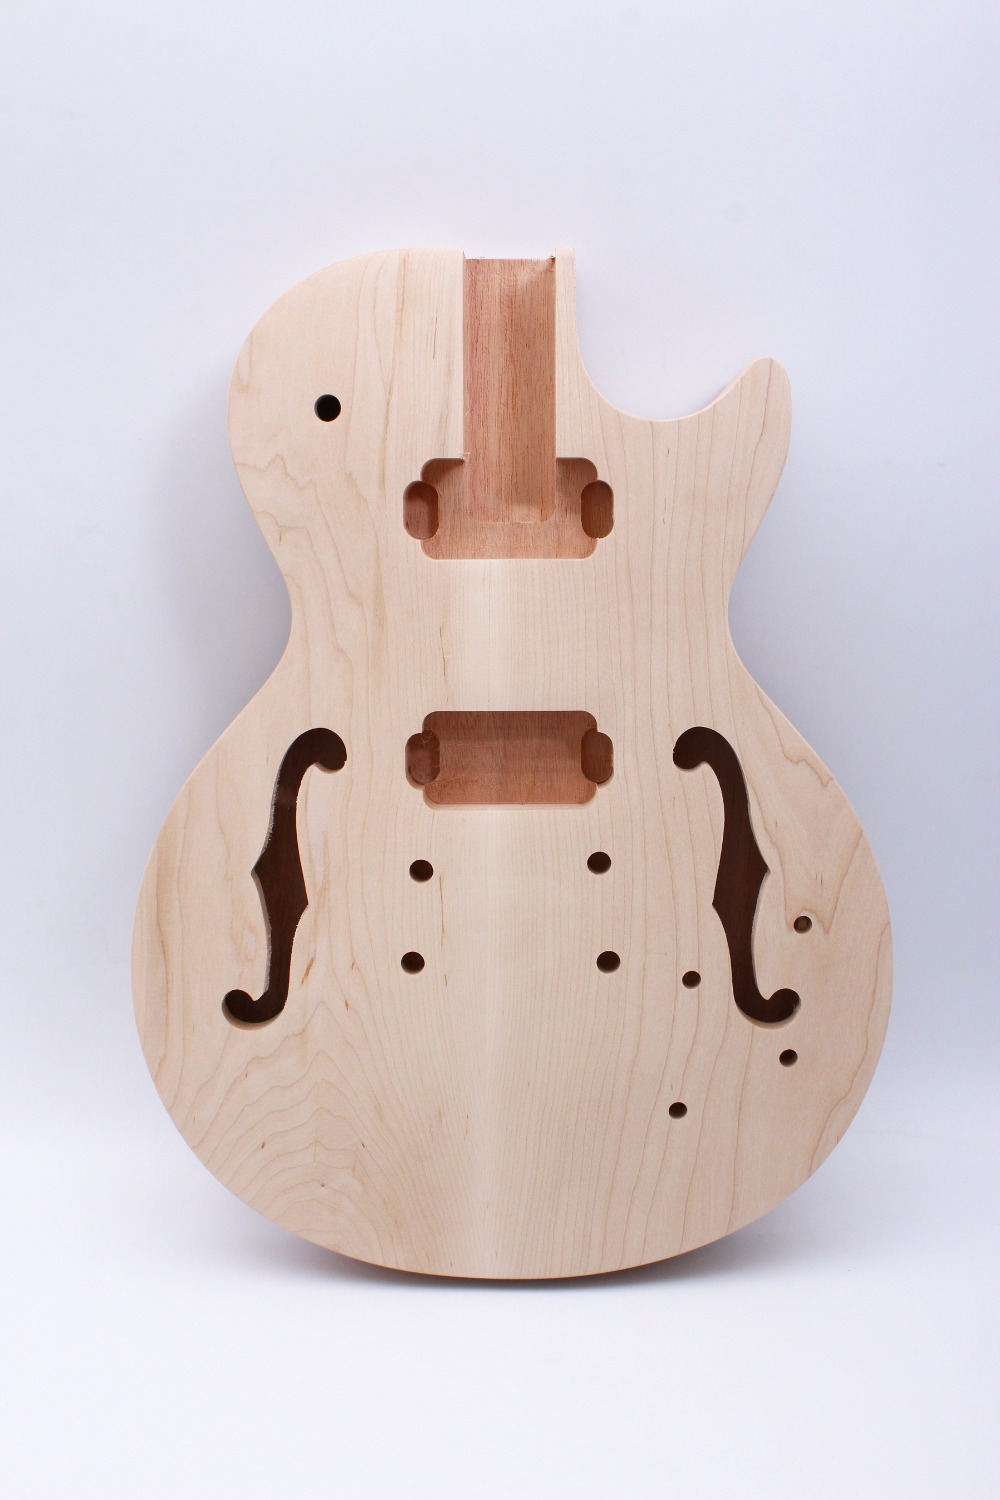 Yinfente LP Electric guitar body Unfinished Mahogany One-piece wood Made Bolt On купить